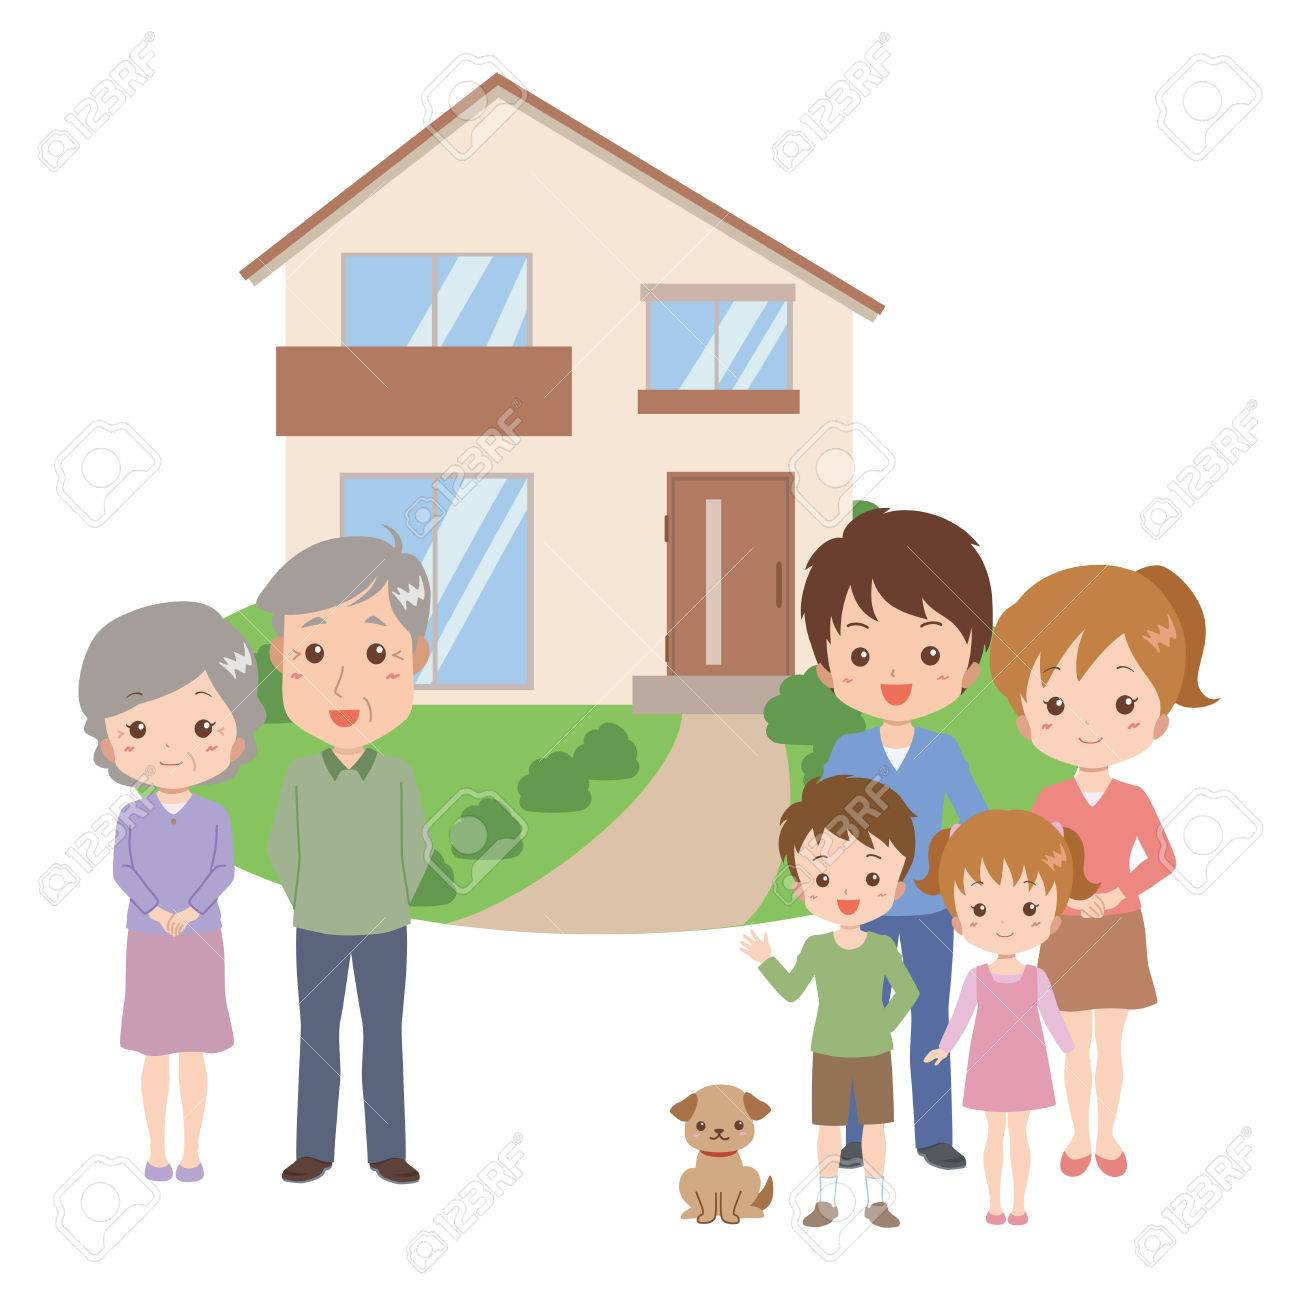 family house Stock Vector - 26173592